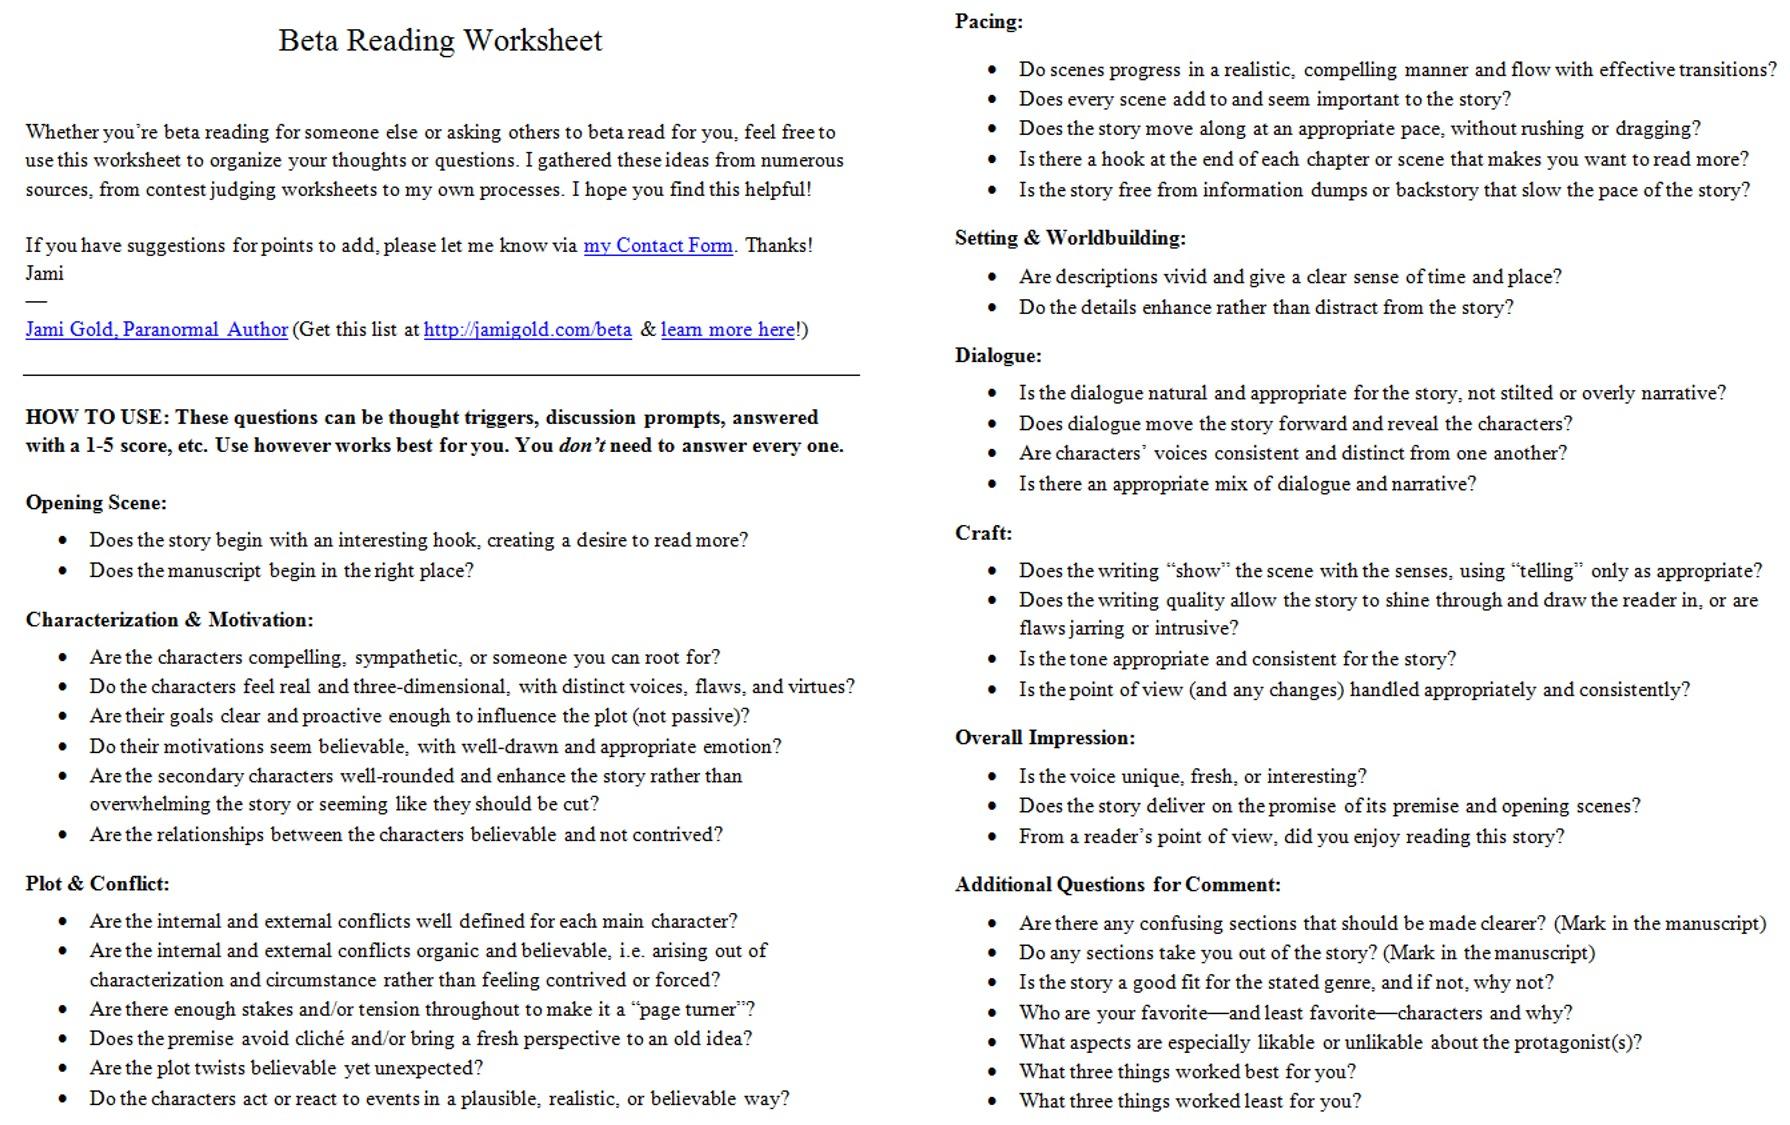 Proatmealus  Stunning Worksheets For Writers  Jami Gold Paranormal Author With Extraordinary Screen Shot Of The Twopage Beta Reading Worksheet With Delectable Scientific Method High School Worksheet Also Lowest Term Worksheet In Addition Squares And Roots Worksheet And Worksheet Science Grade  As Well As Lewis Dot Worksheet Additionally Teaching  Hour Clock Worksheets From Jamigoldcom With Proatmealus  Extraordinary Worksheets For Writers  Jami Gold Paranormal Author With Delectable Screen Shot Of The Twopage Beta Reading Worksheet And Stunning Scientific Method High School Worksheet Also Lowest Term Worksheet In Addition Squares And Roots Worksheet From Jamigoldcom